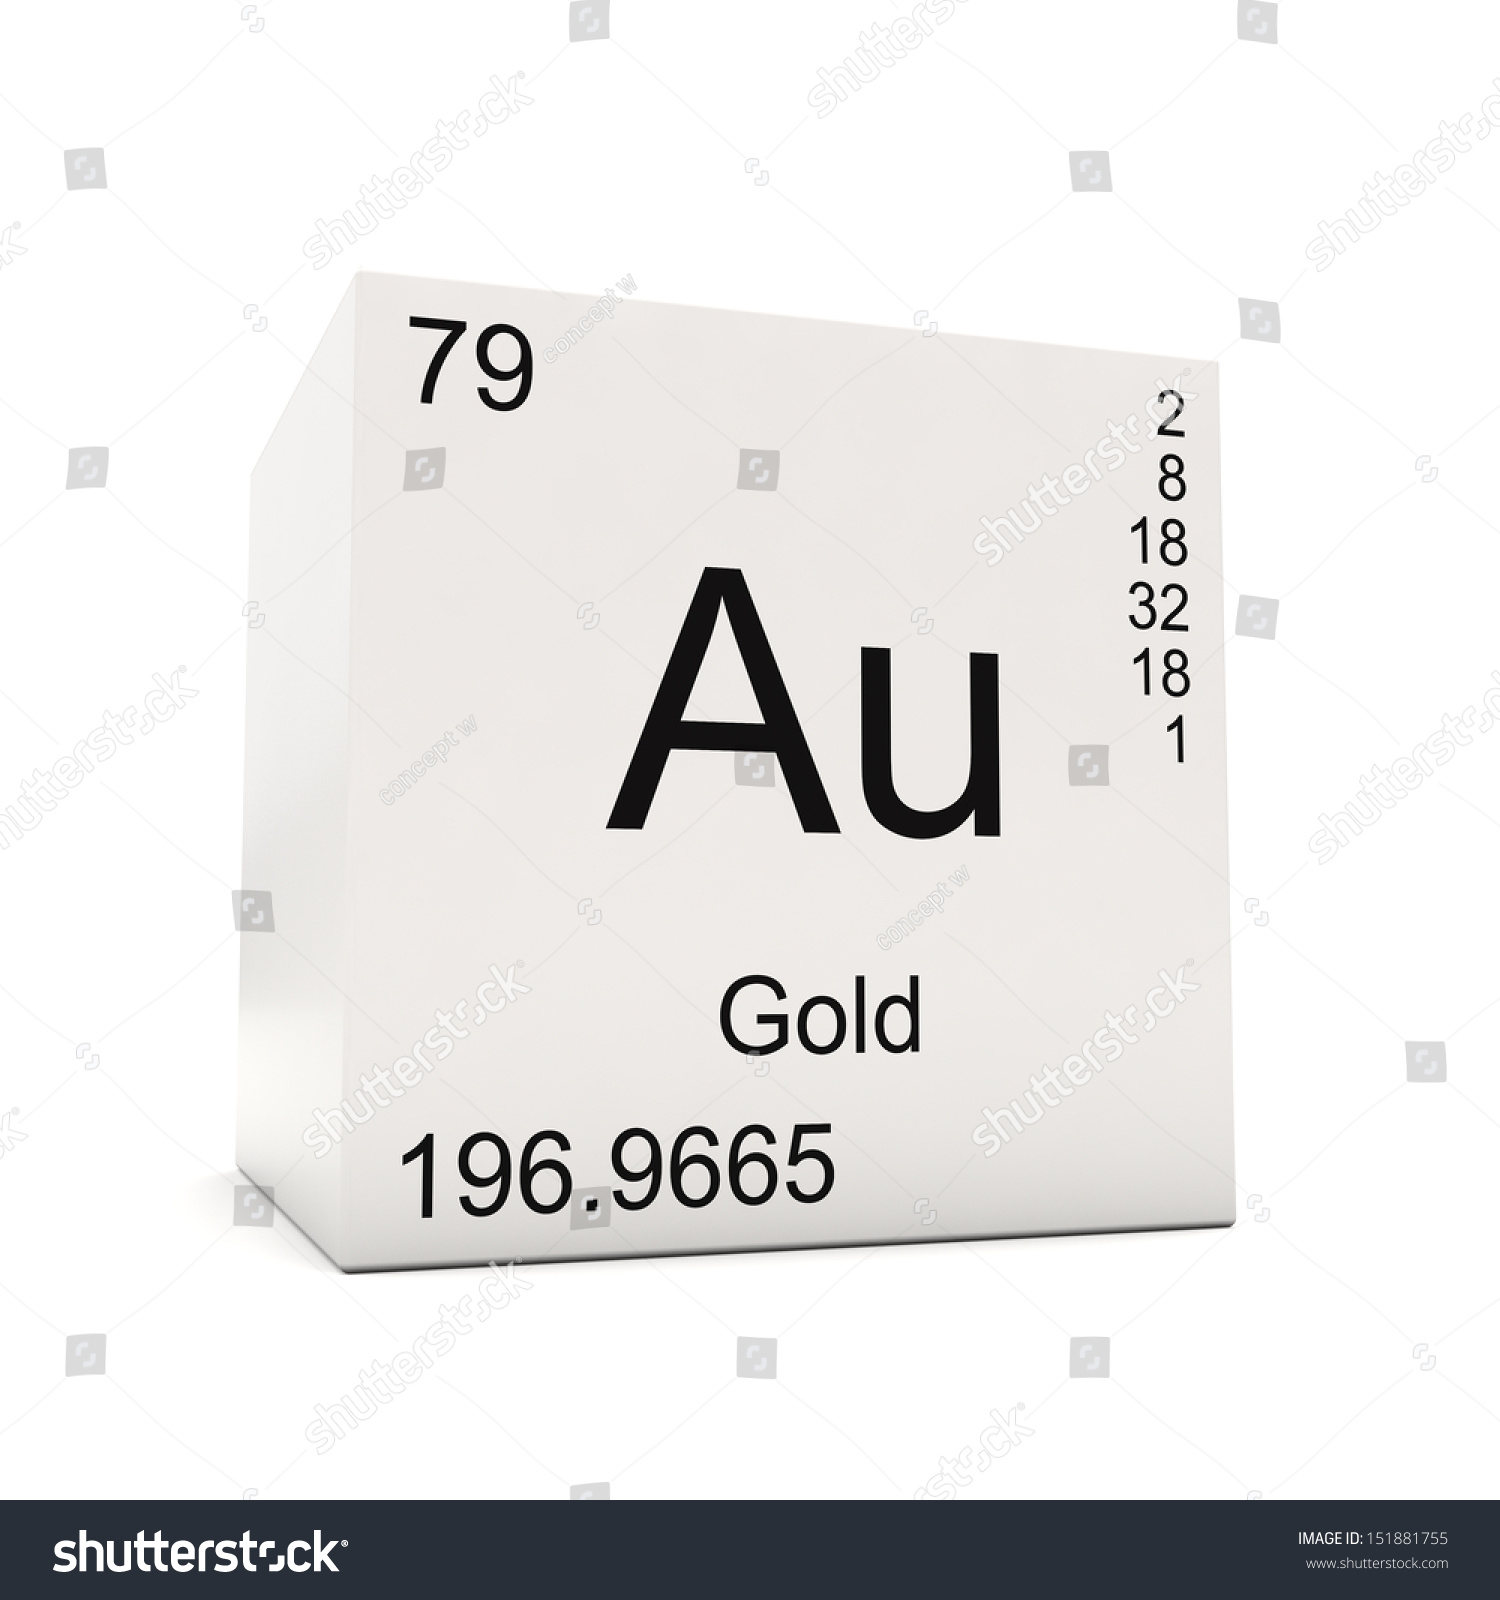 Cube gold element periodic table isolated stock illustration cube of gold element of the periodic table isolated on white background gamestrikefo Image collections